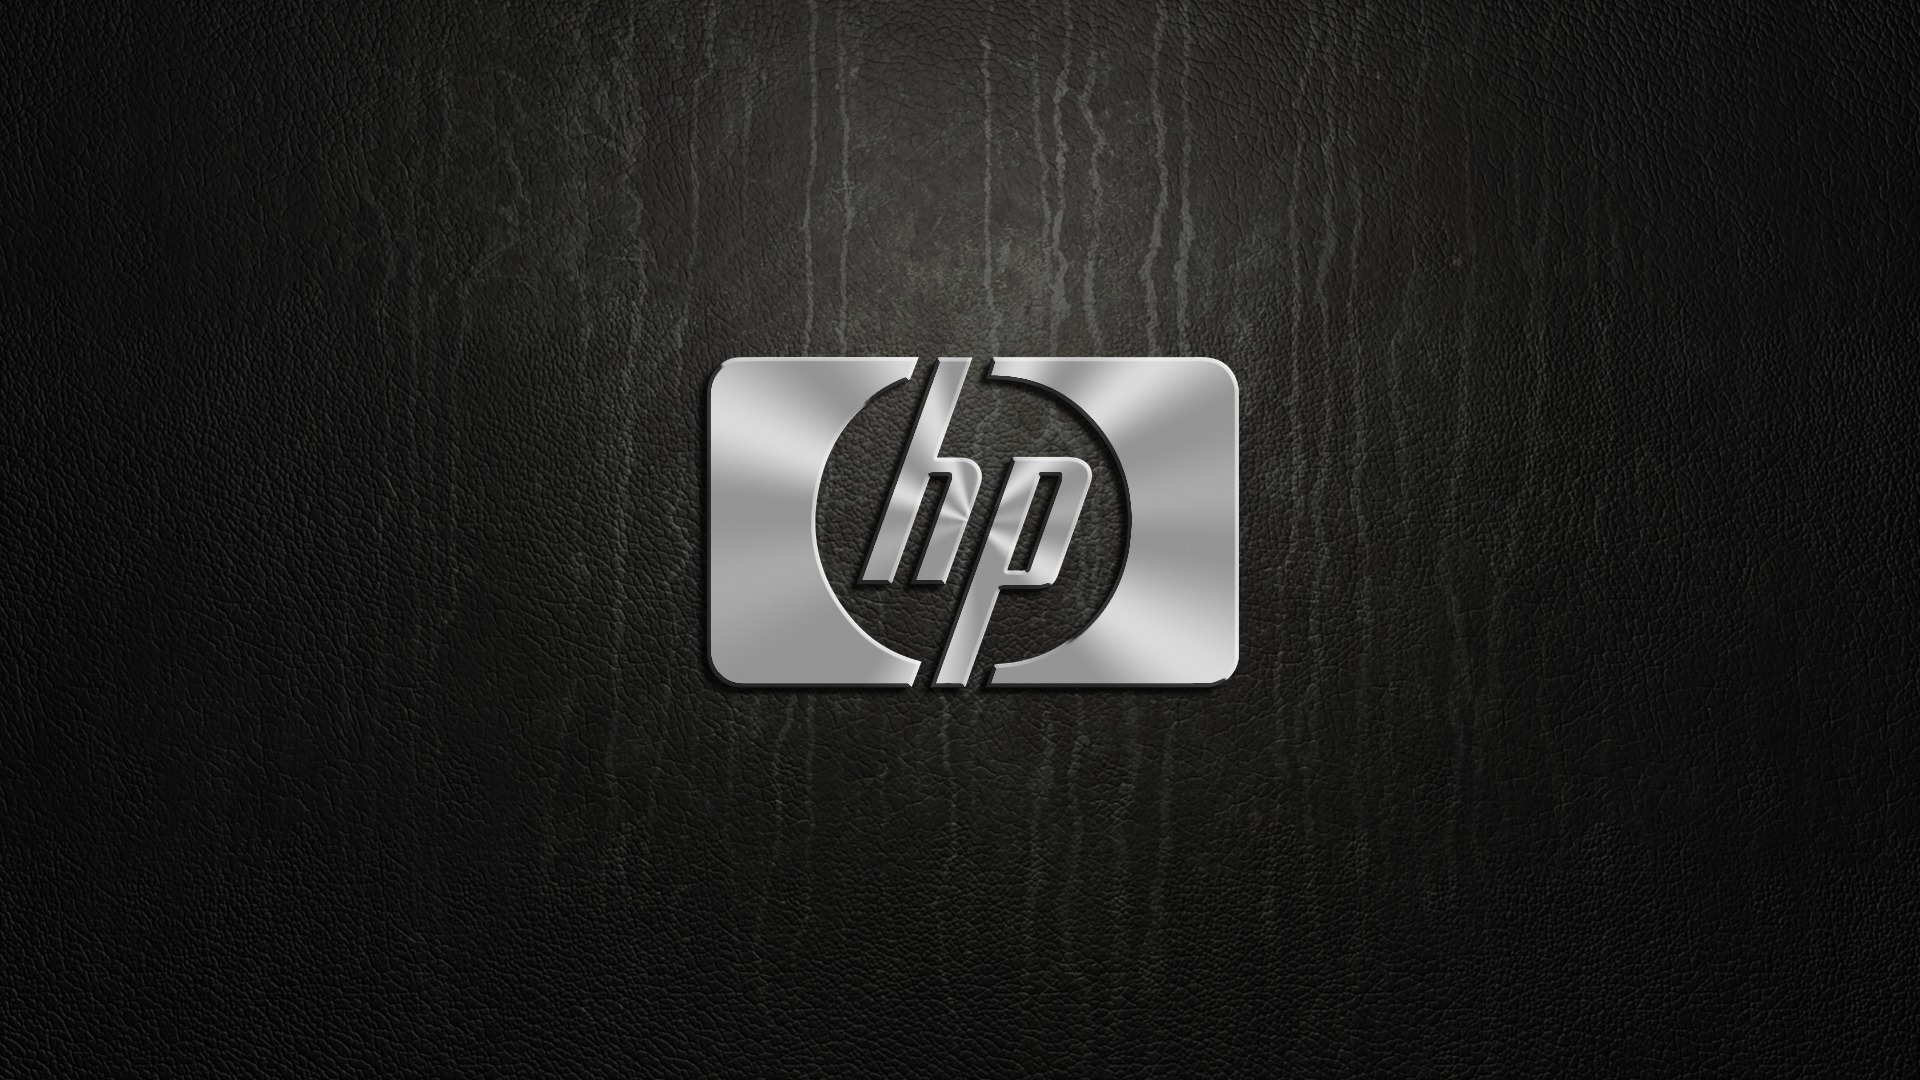 HP Wallpaper, logo, silver - HD Wallpapers, Desktop Wallpaper, Free